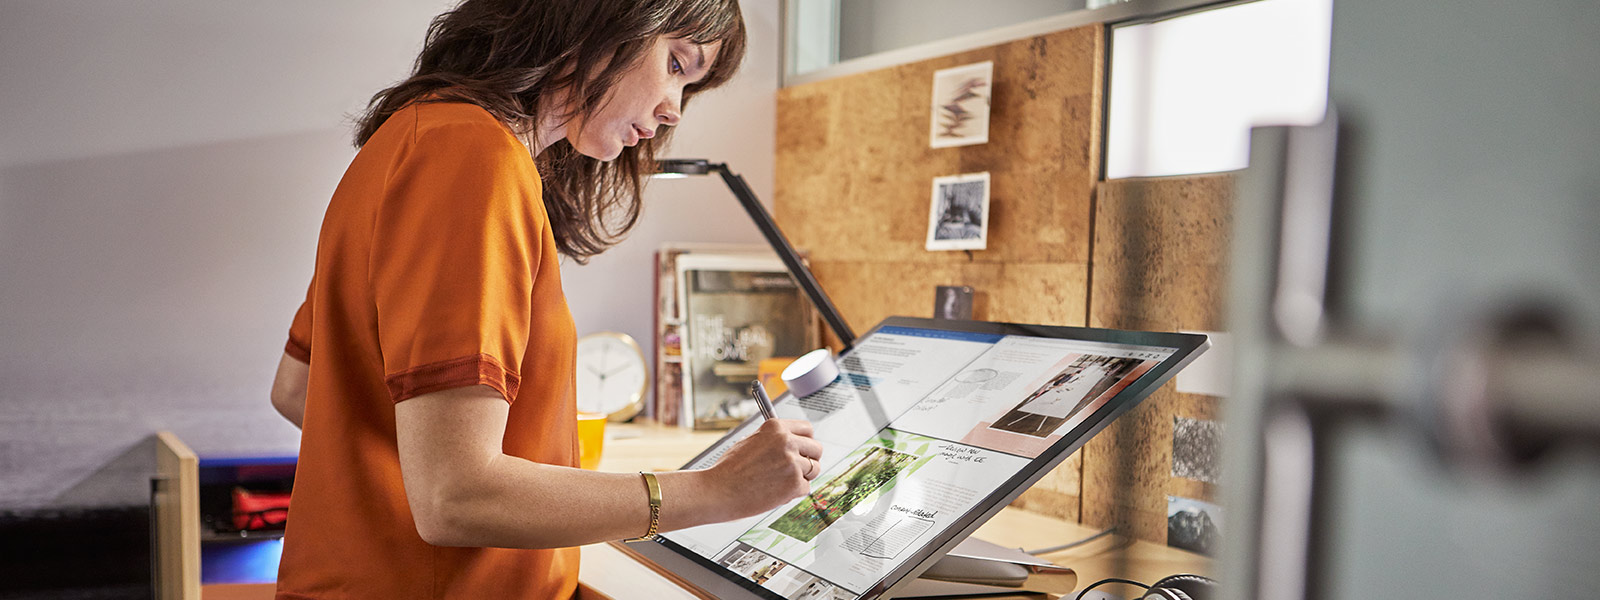 Woman uses pen on Surface Studio.